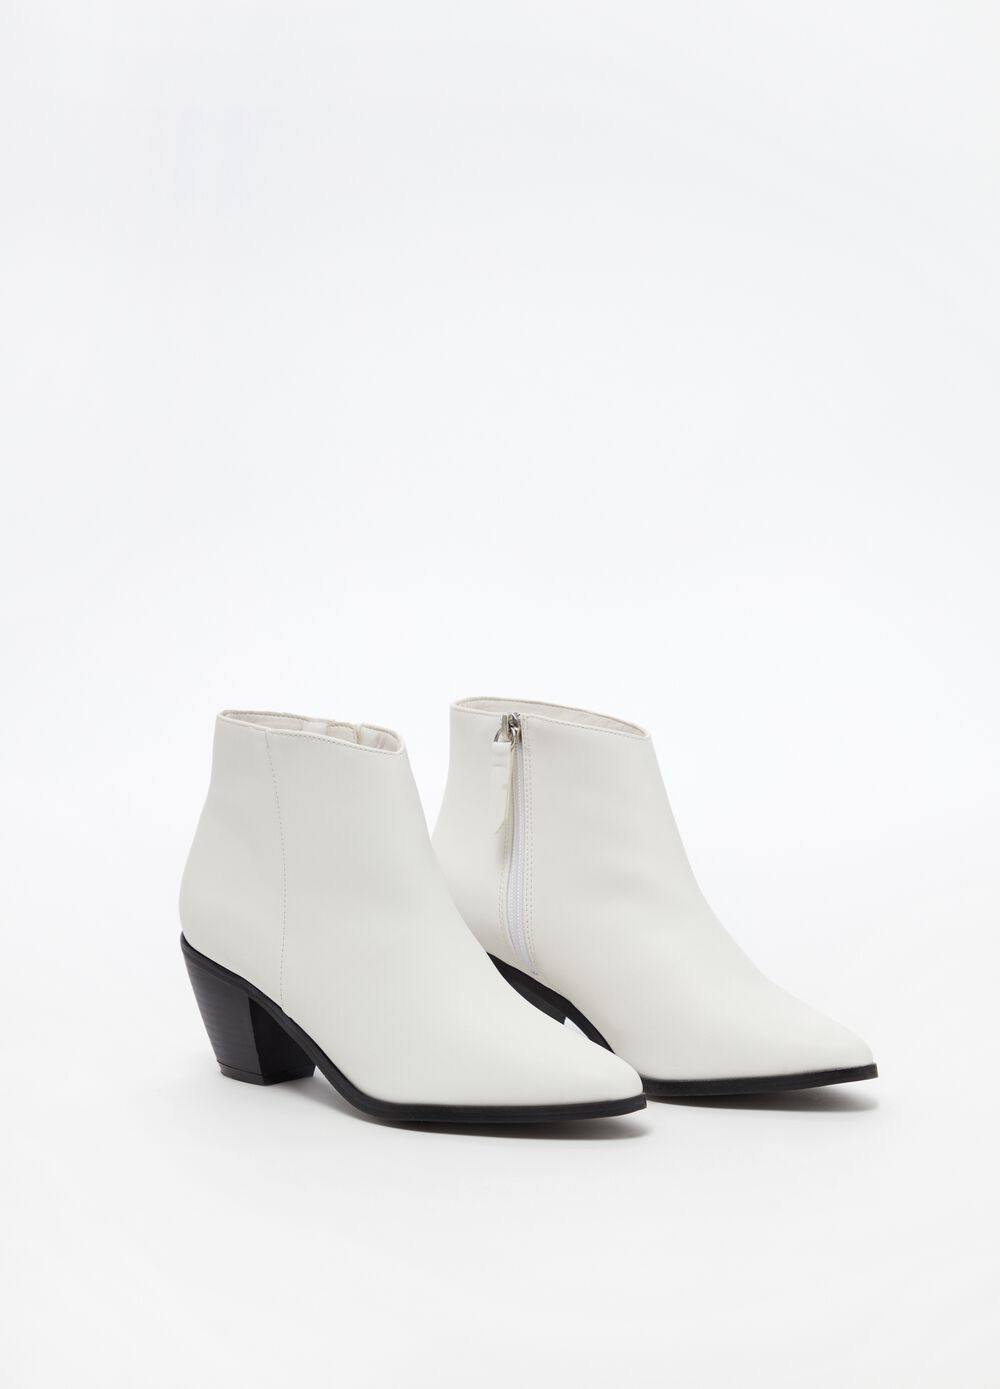 Pointed Texan boots with side zip